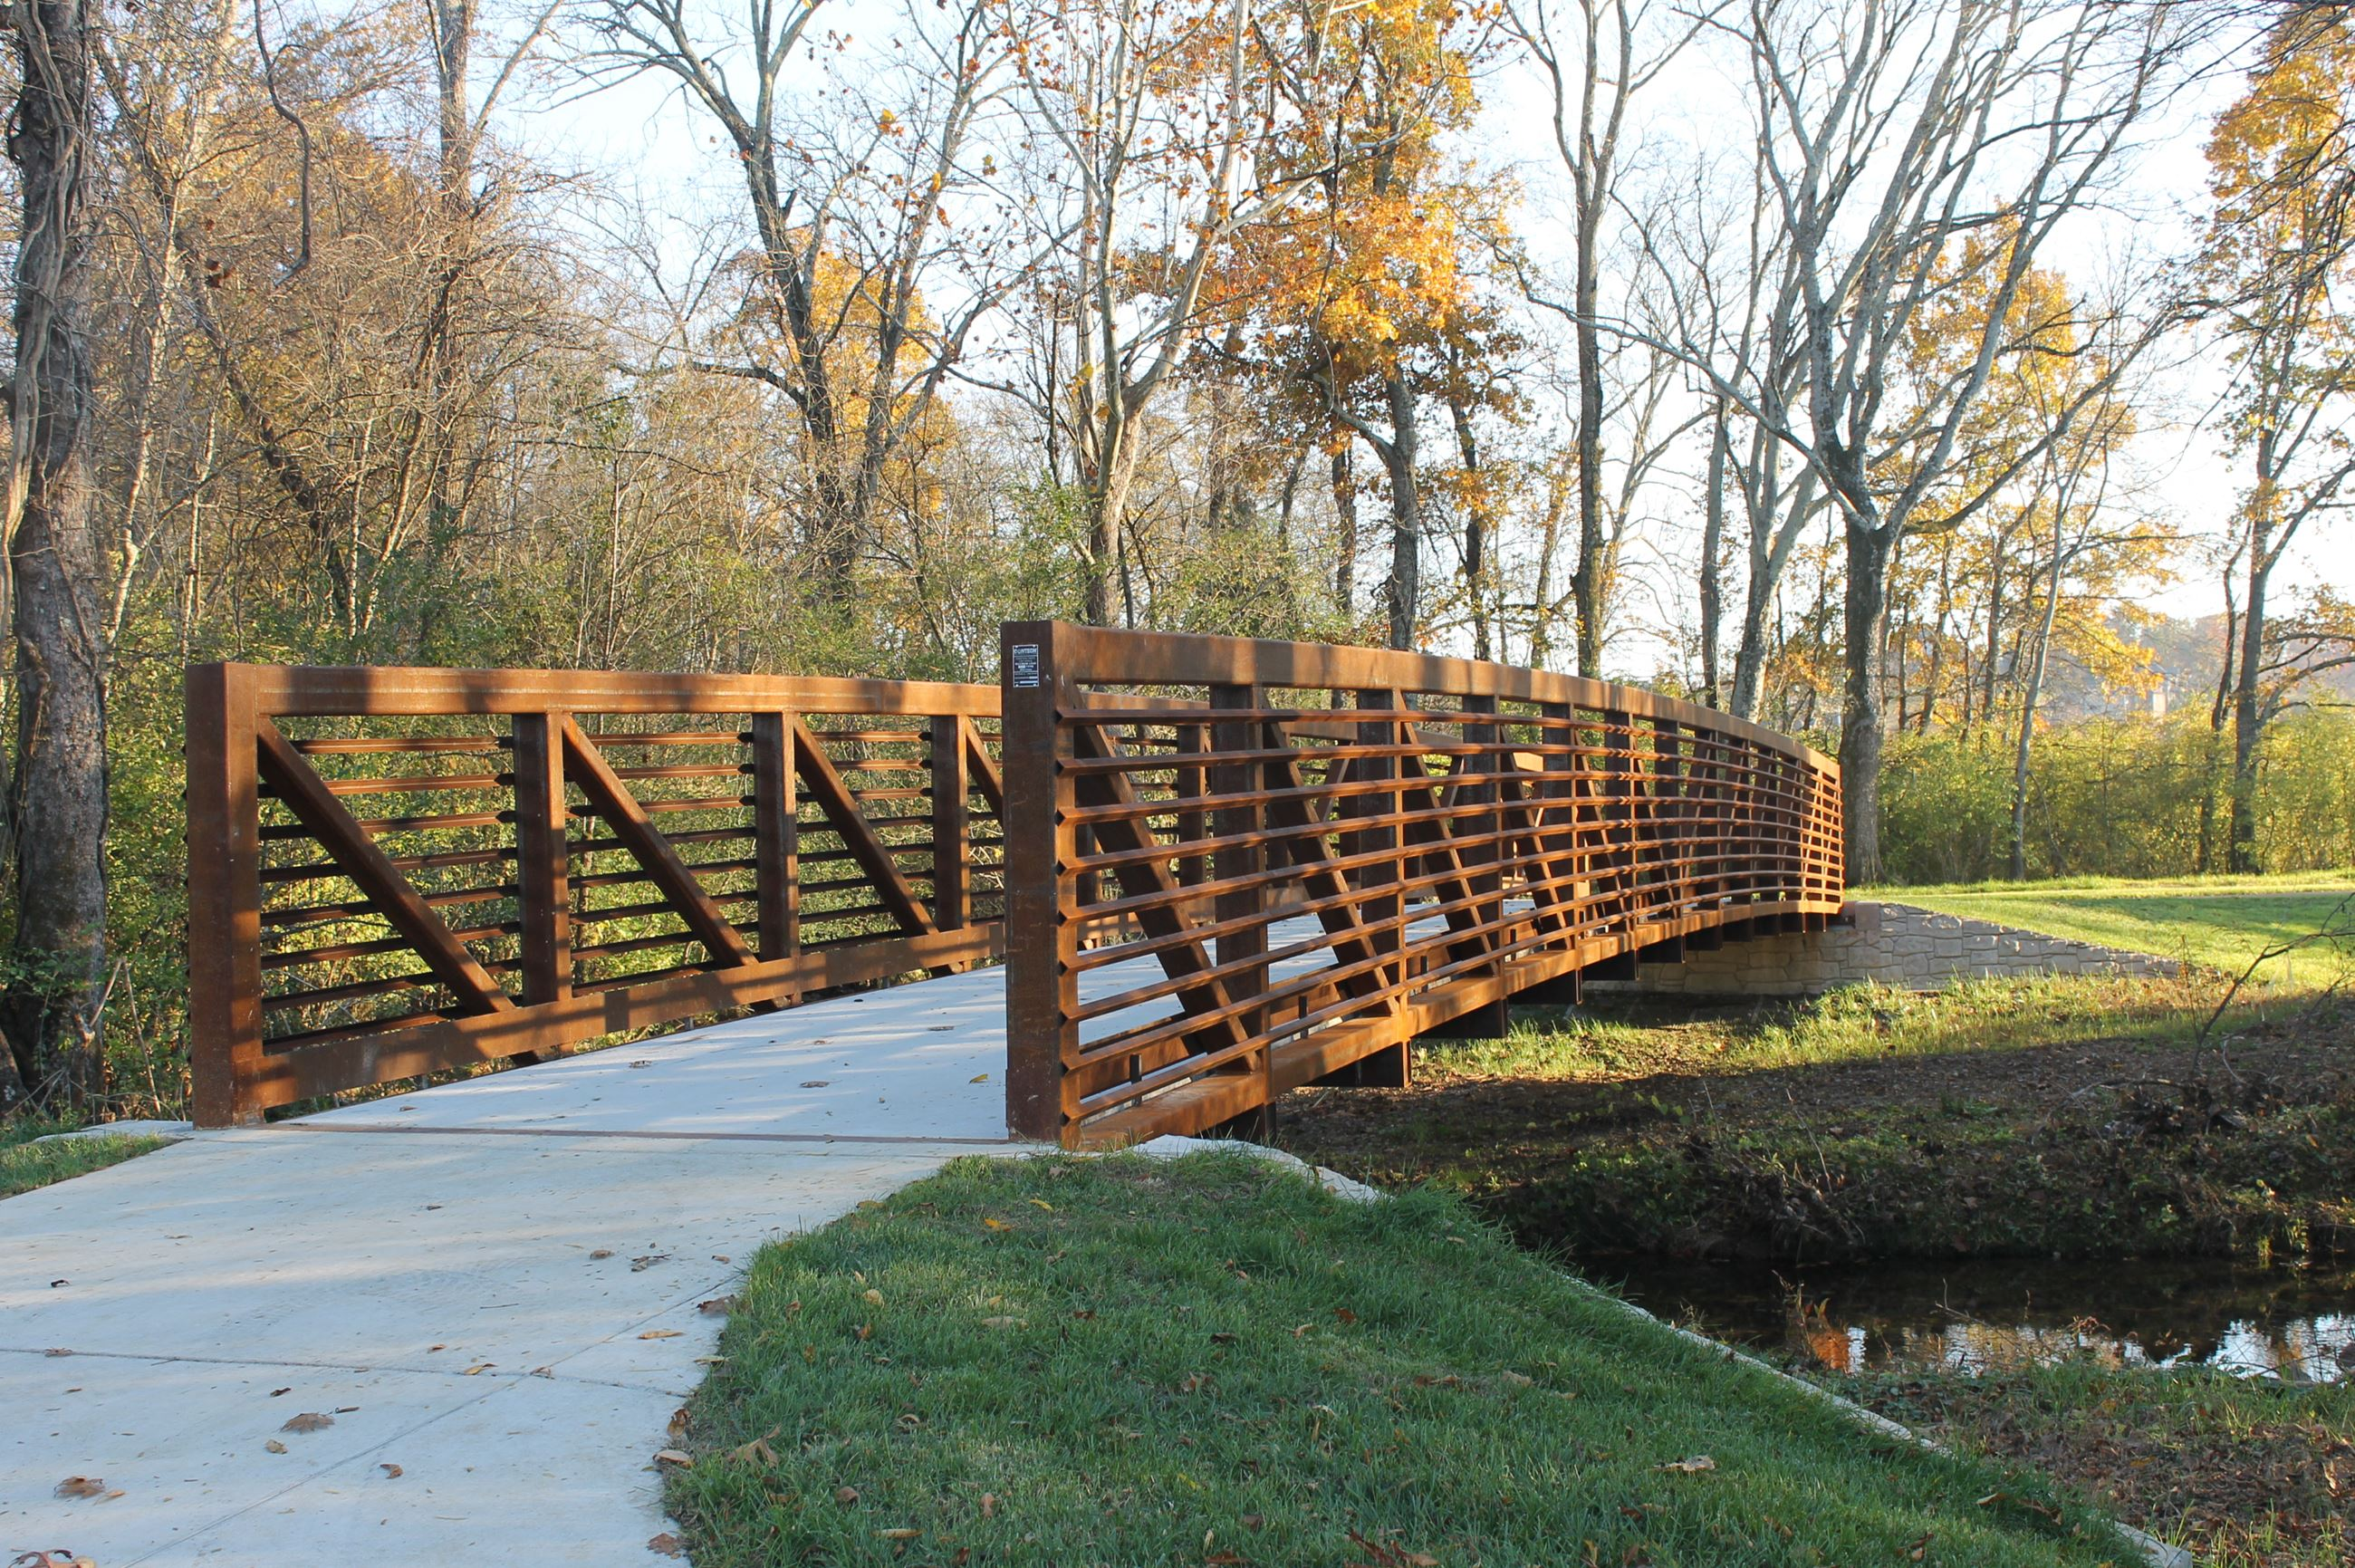 Photo of a beautiful pedestrian bridge on the McFee greenway.